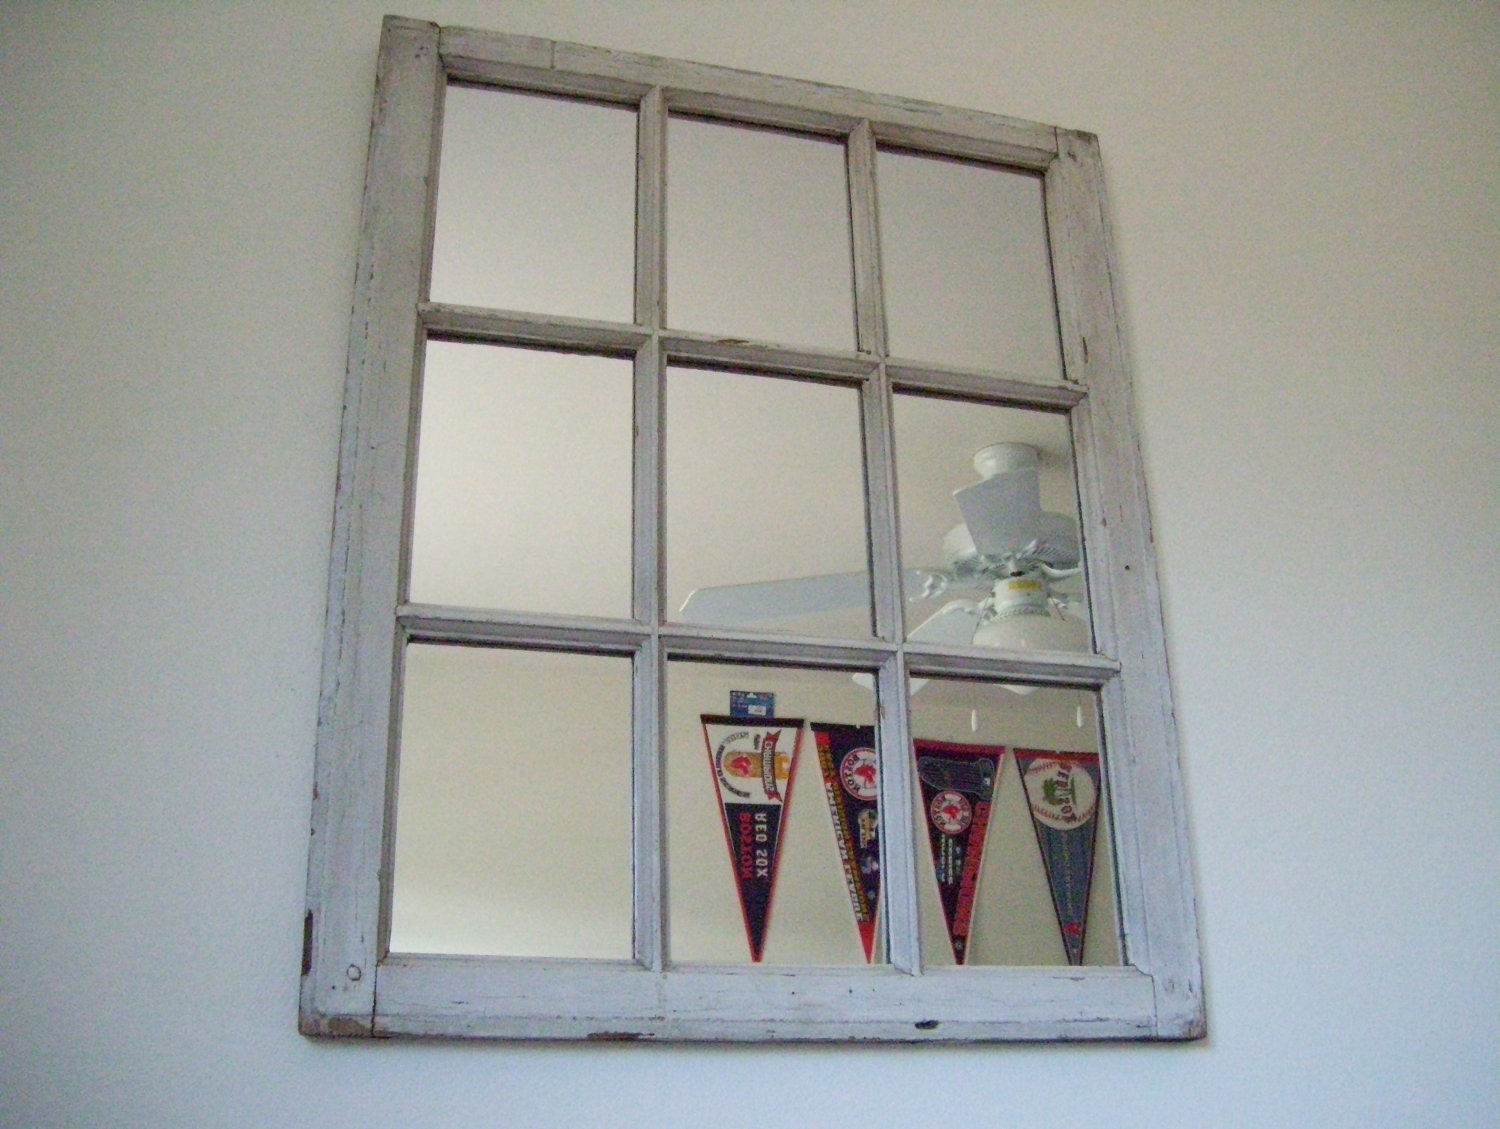 Decorative rustic white 9 pane window frame mirror Window pane mirror